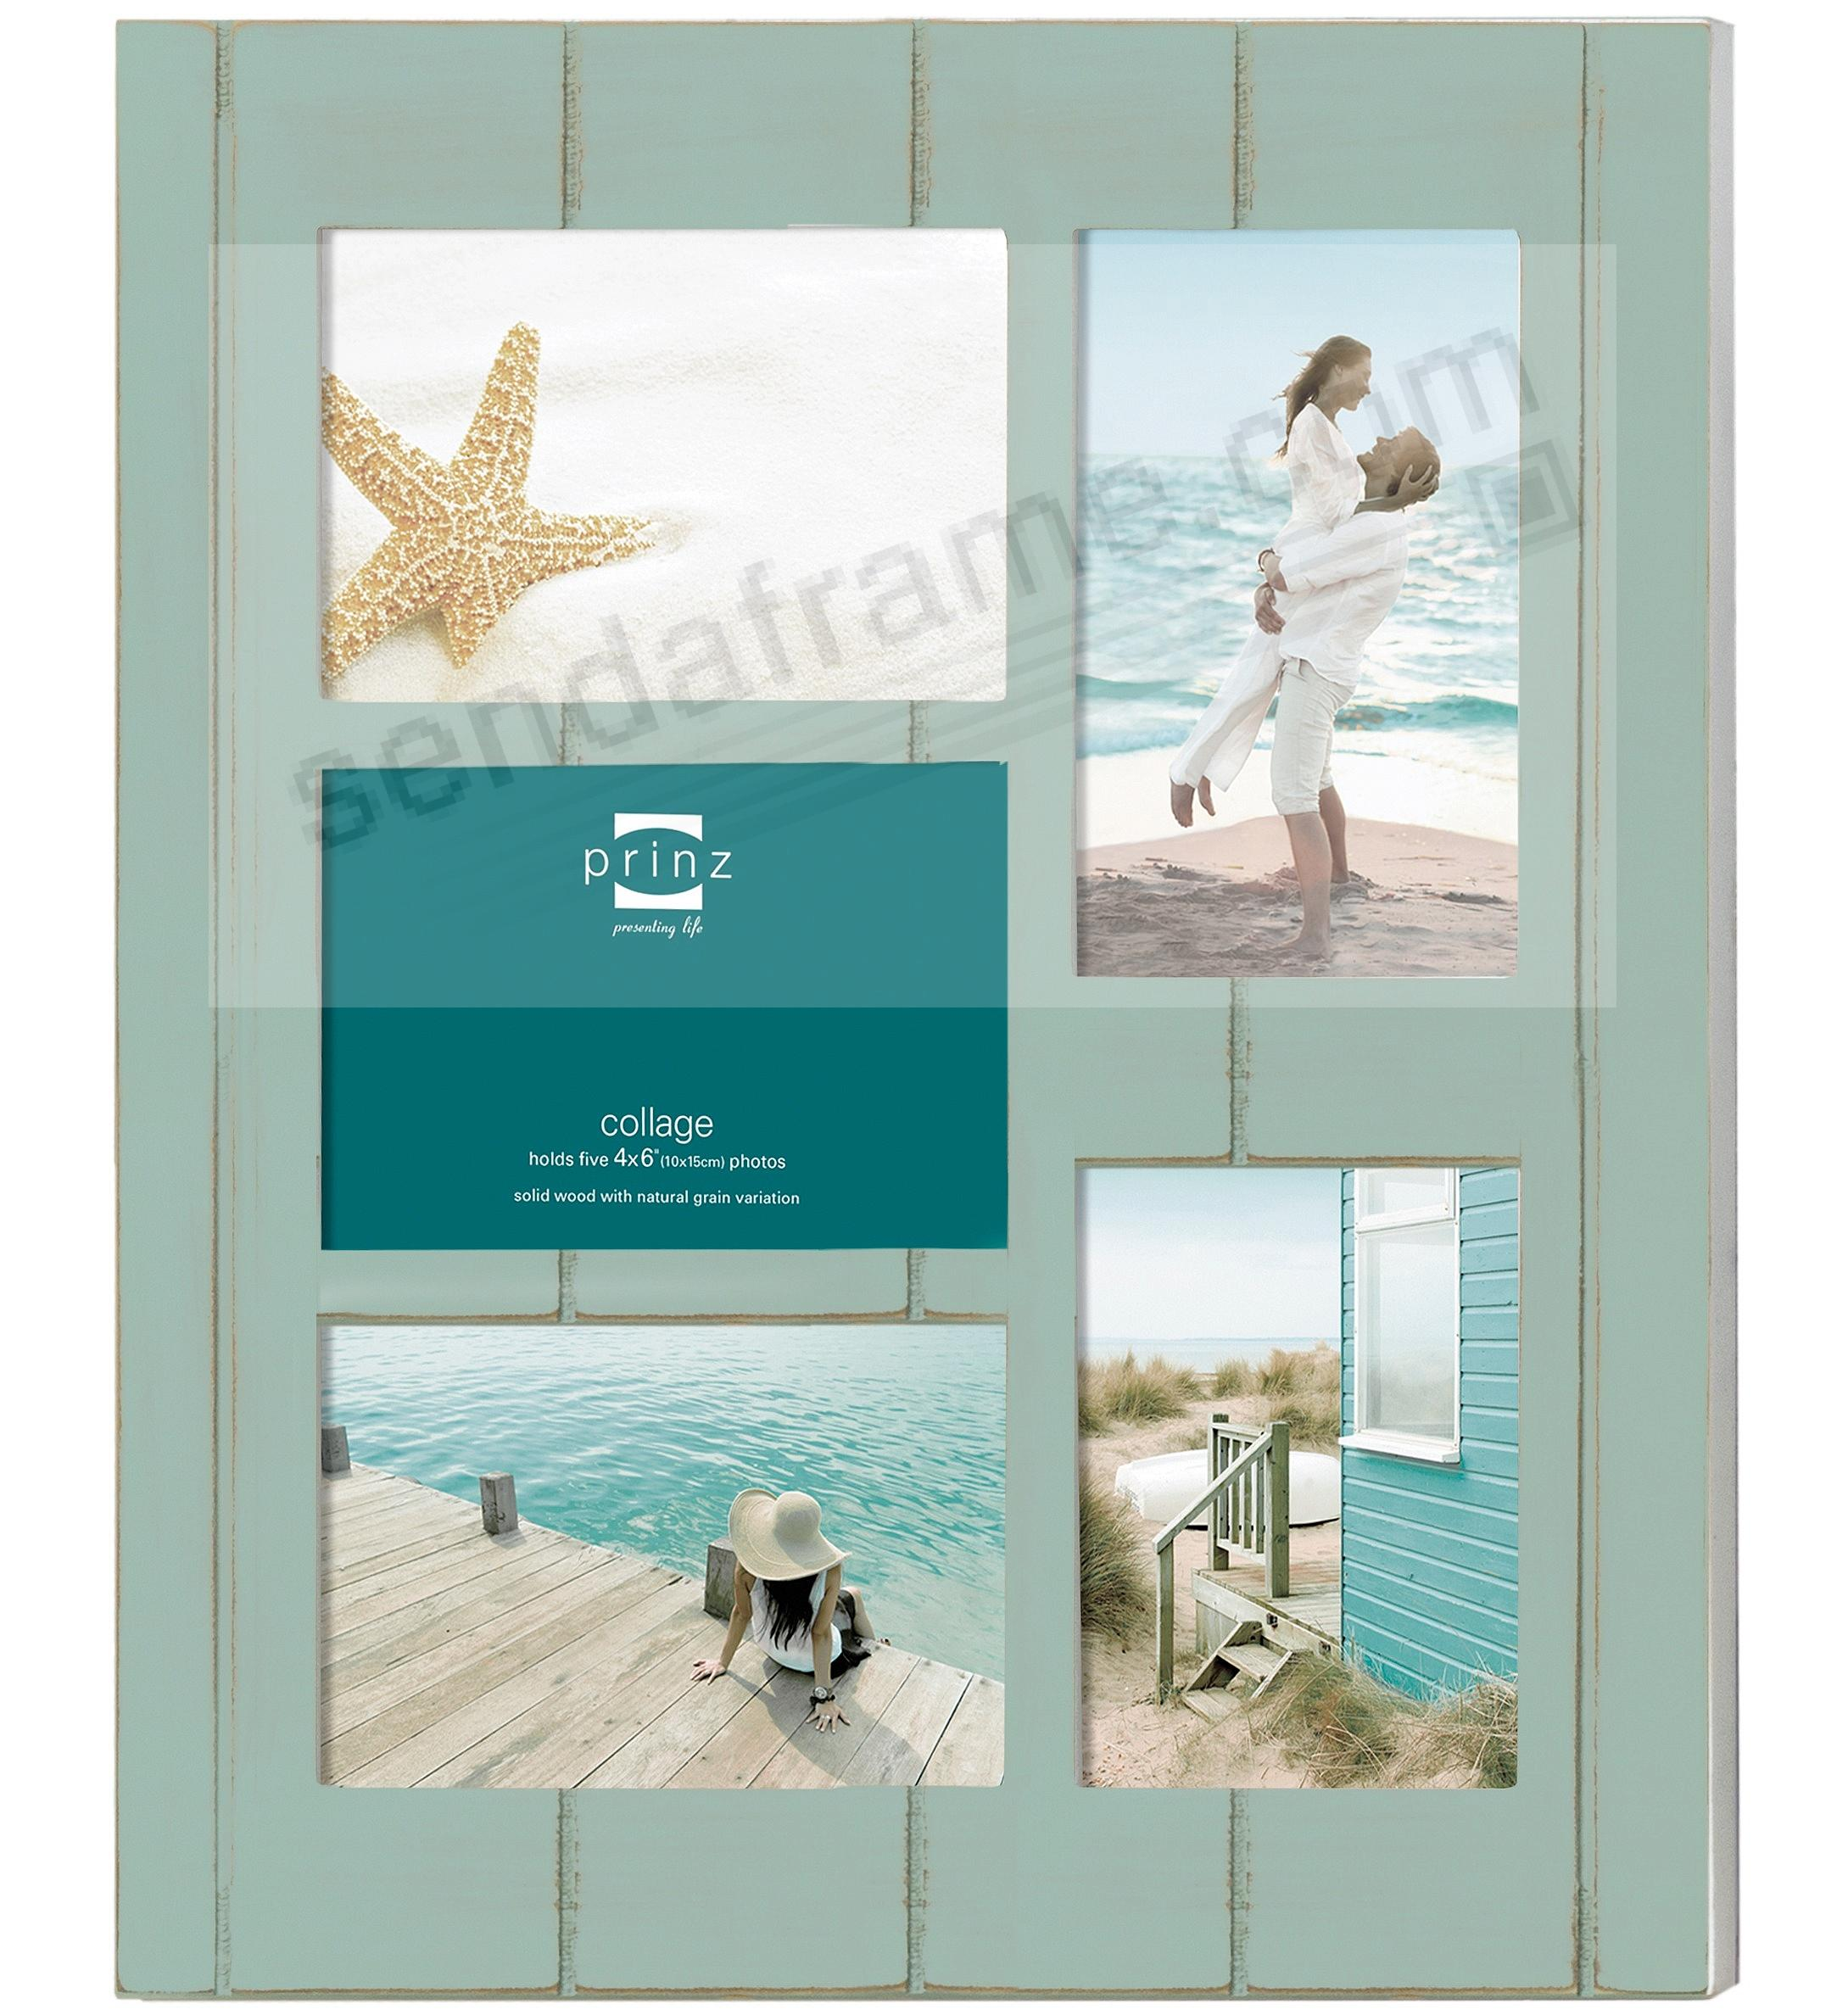 seaside aquamarine stain wood 54x6 collage frame by prinz